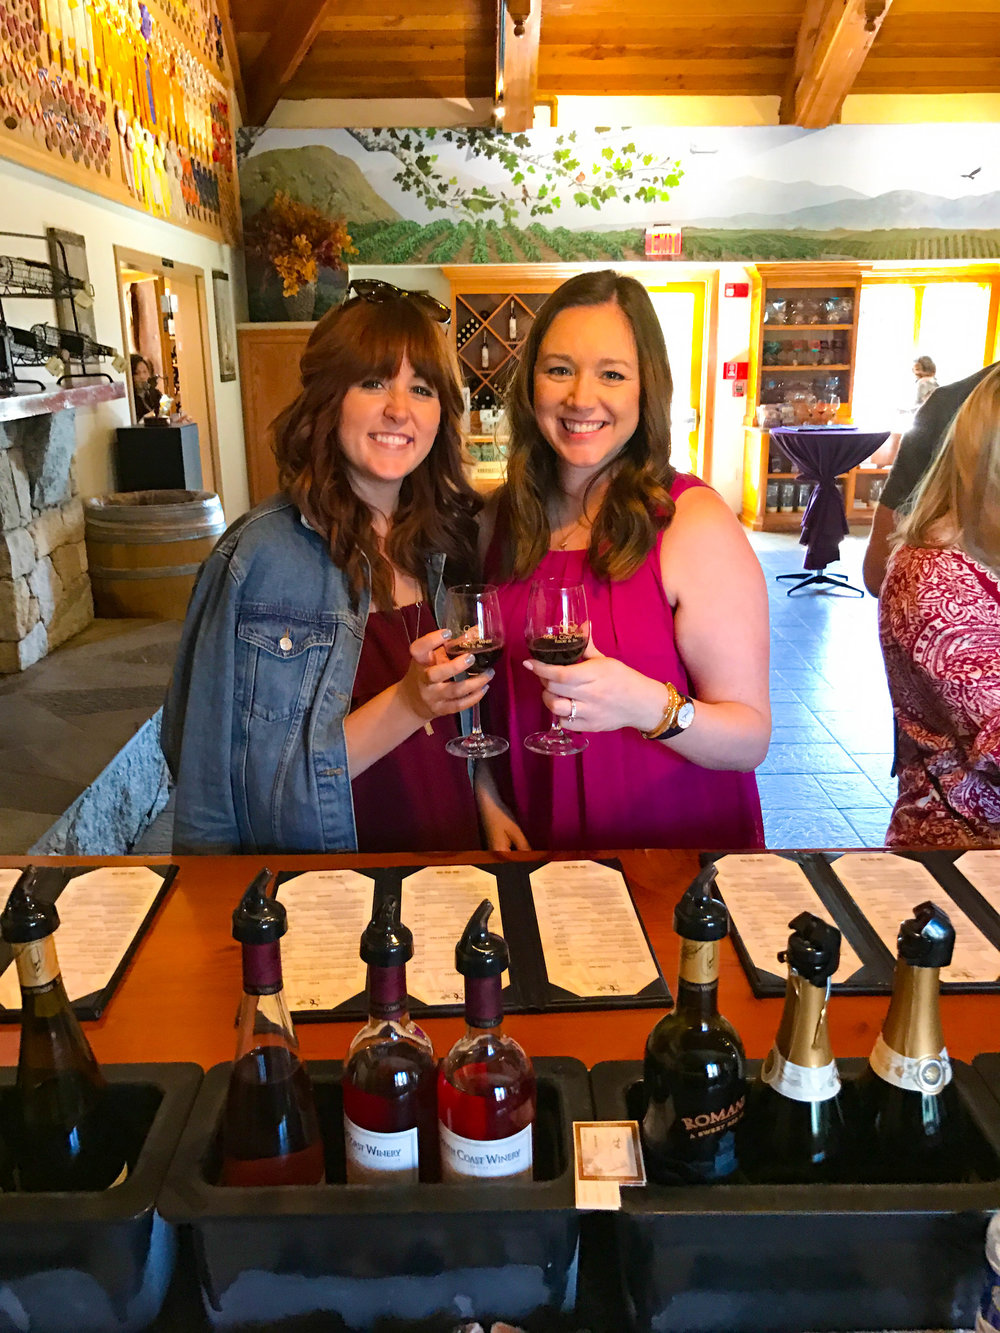 Temecula Wine Tasting Tour - South Coast Winery